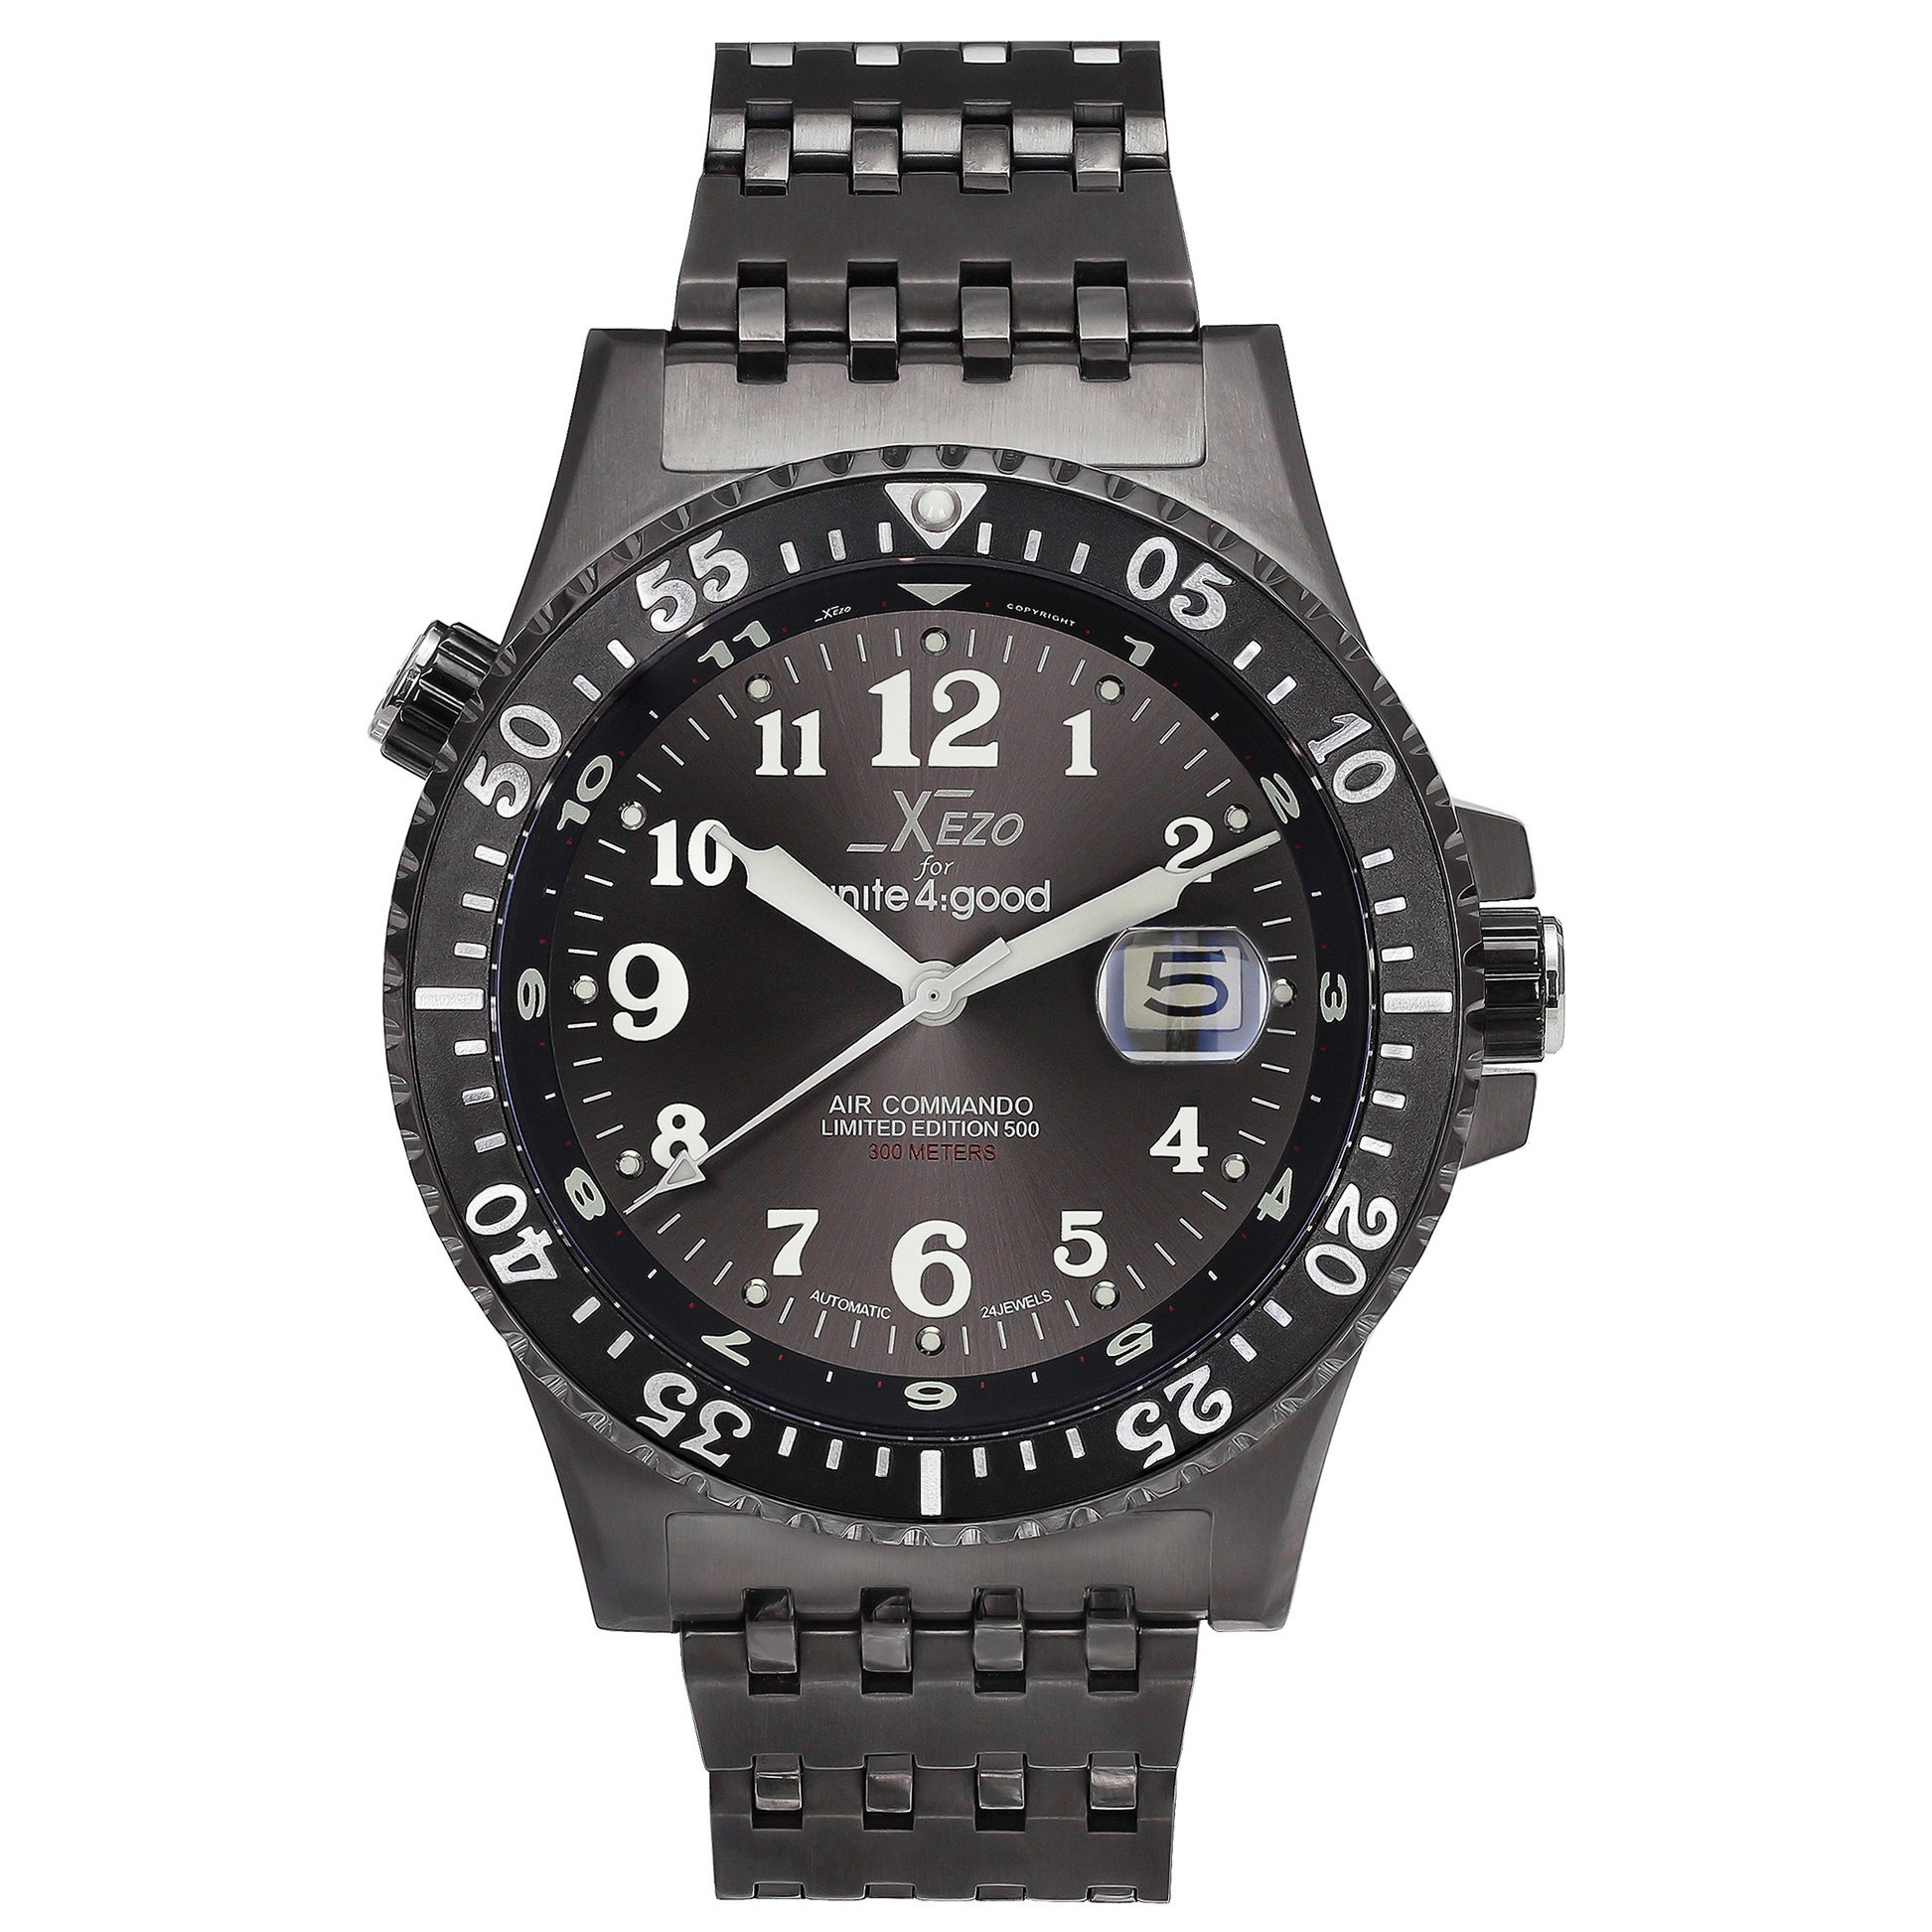 735283ebe Shop Xezo for Unite4:good Air Commando Men's Limited-Edition Automatic  Divers and Pilots Watch - Free Shipping Today - Overstock - 9720826